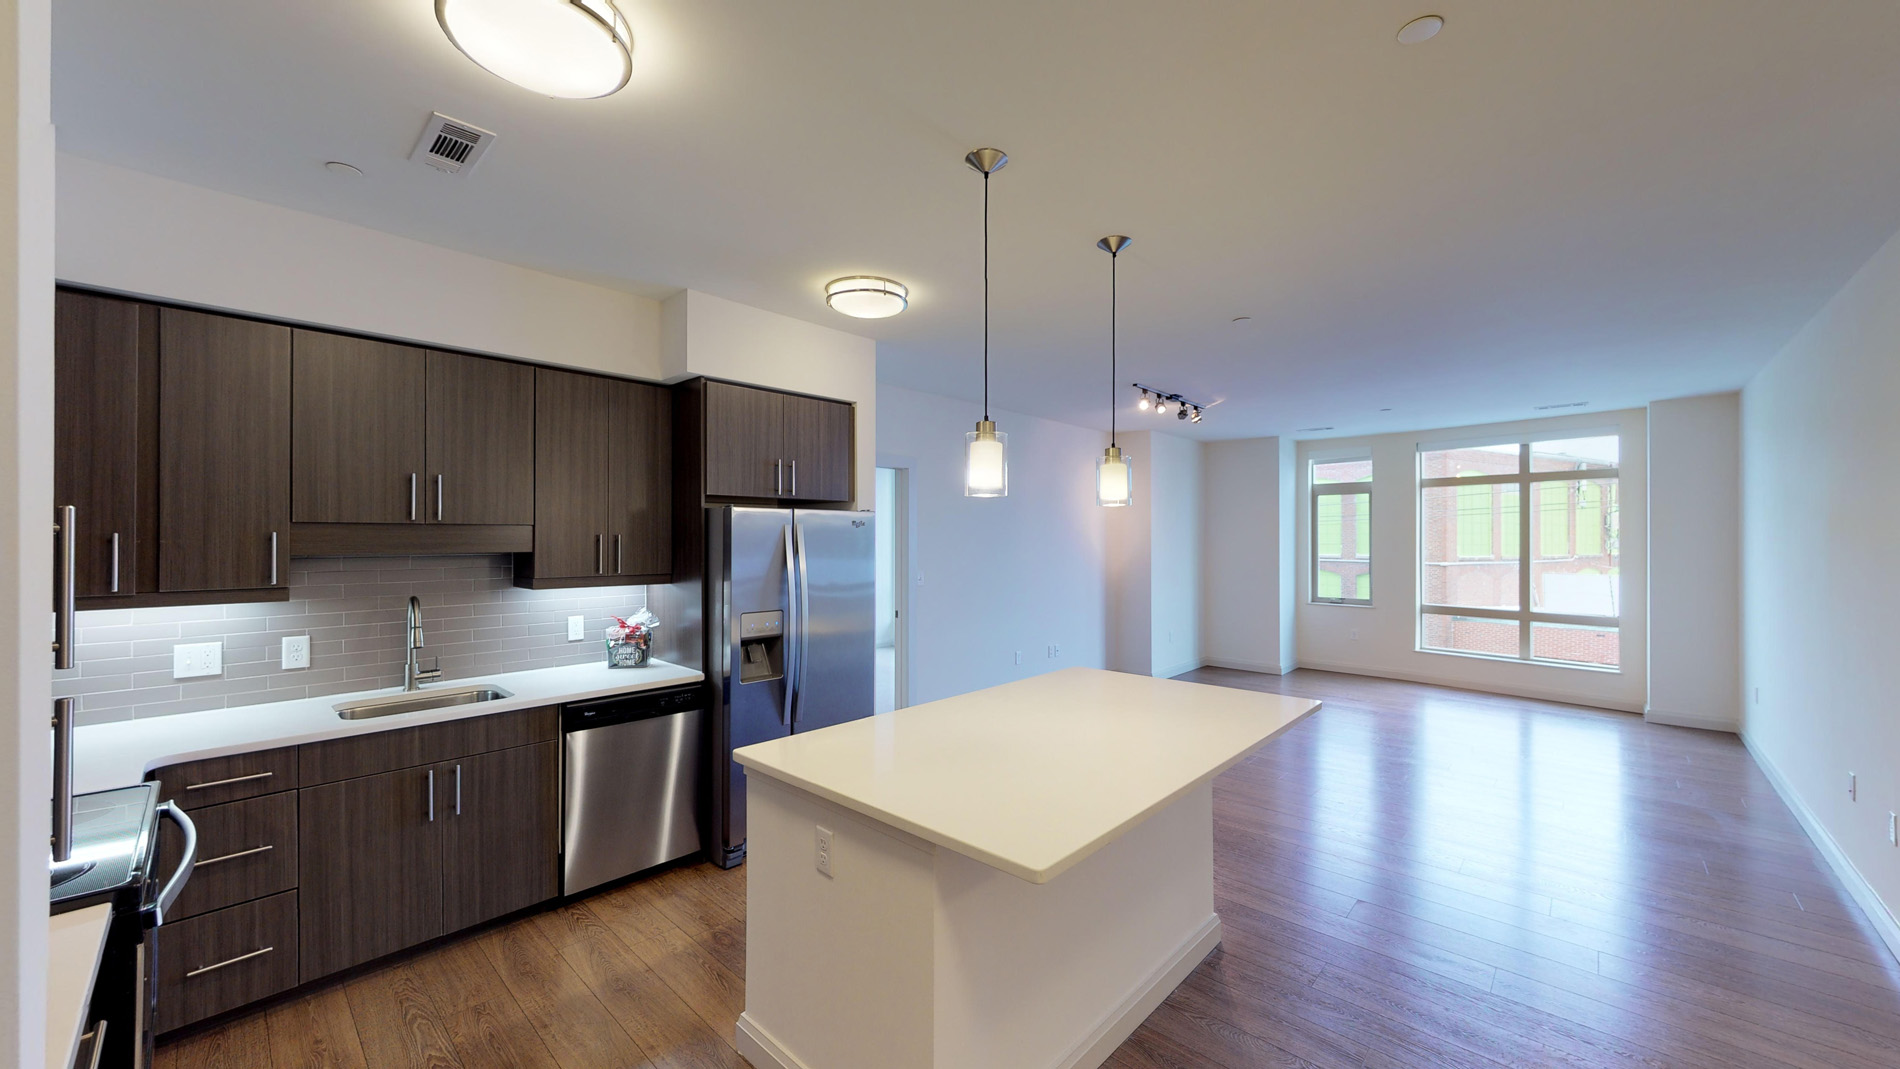 2 Beds, 2 Baths apartment in Waltham for $2,842